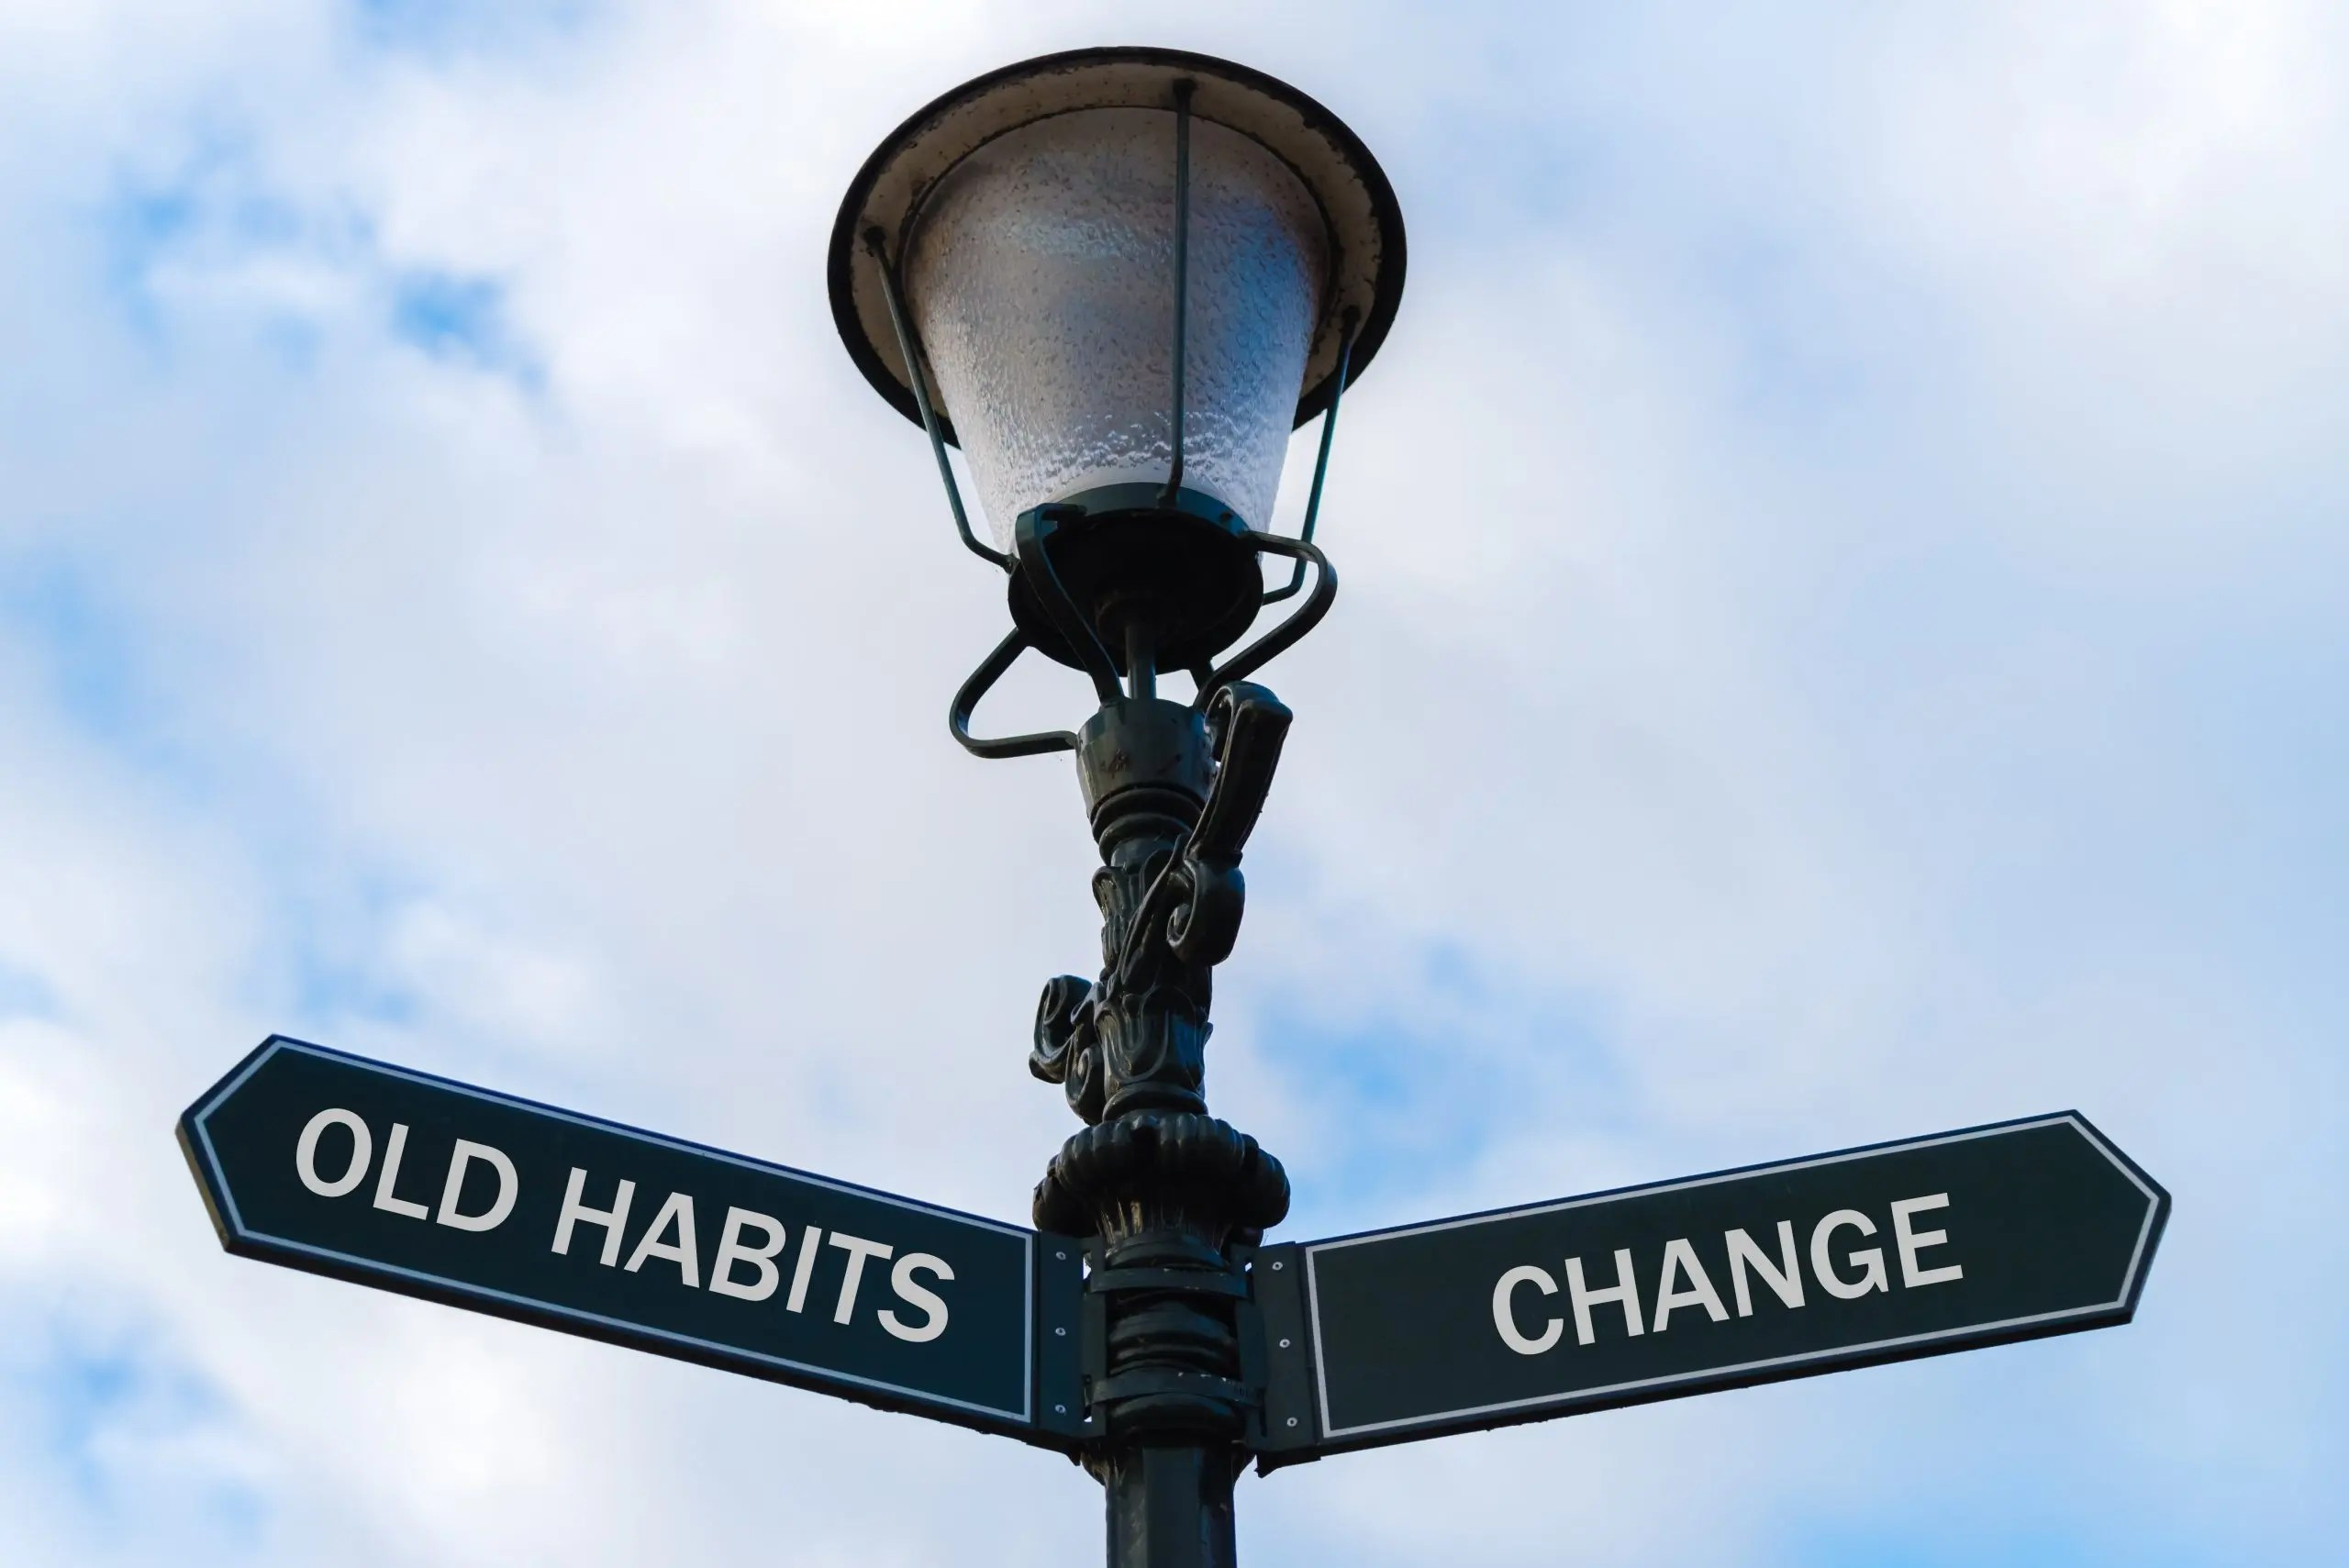 Old Habits versus Change directional signs on guidepost